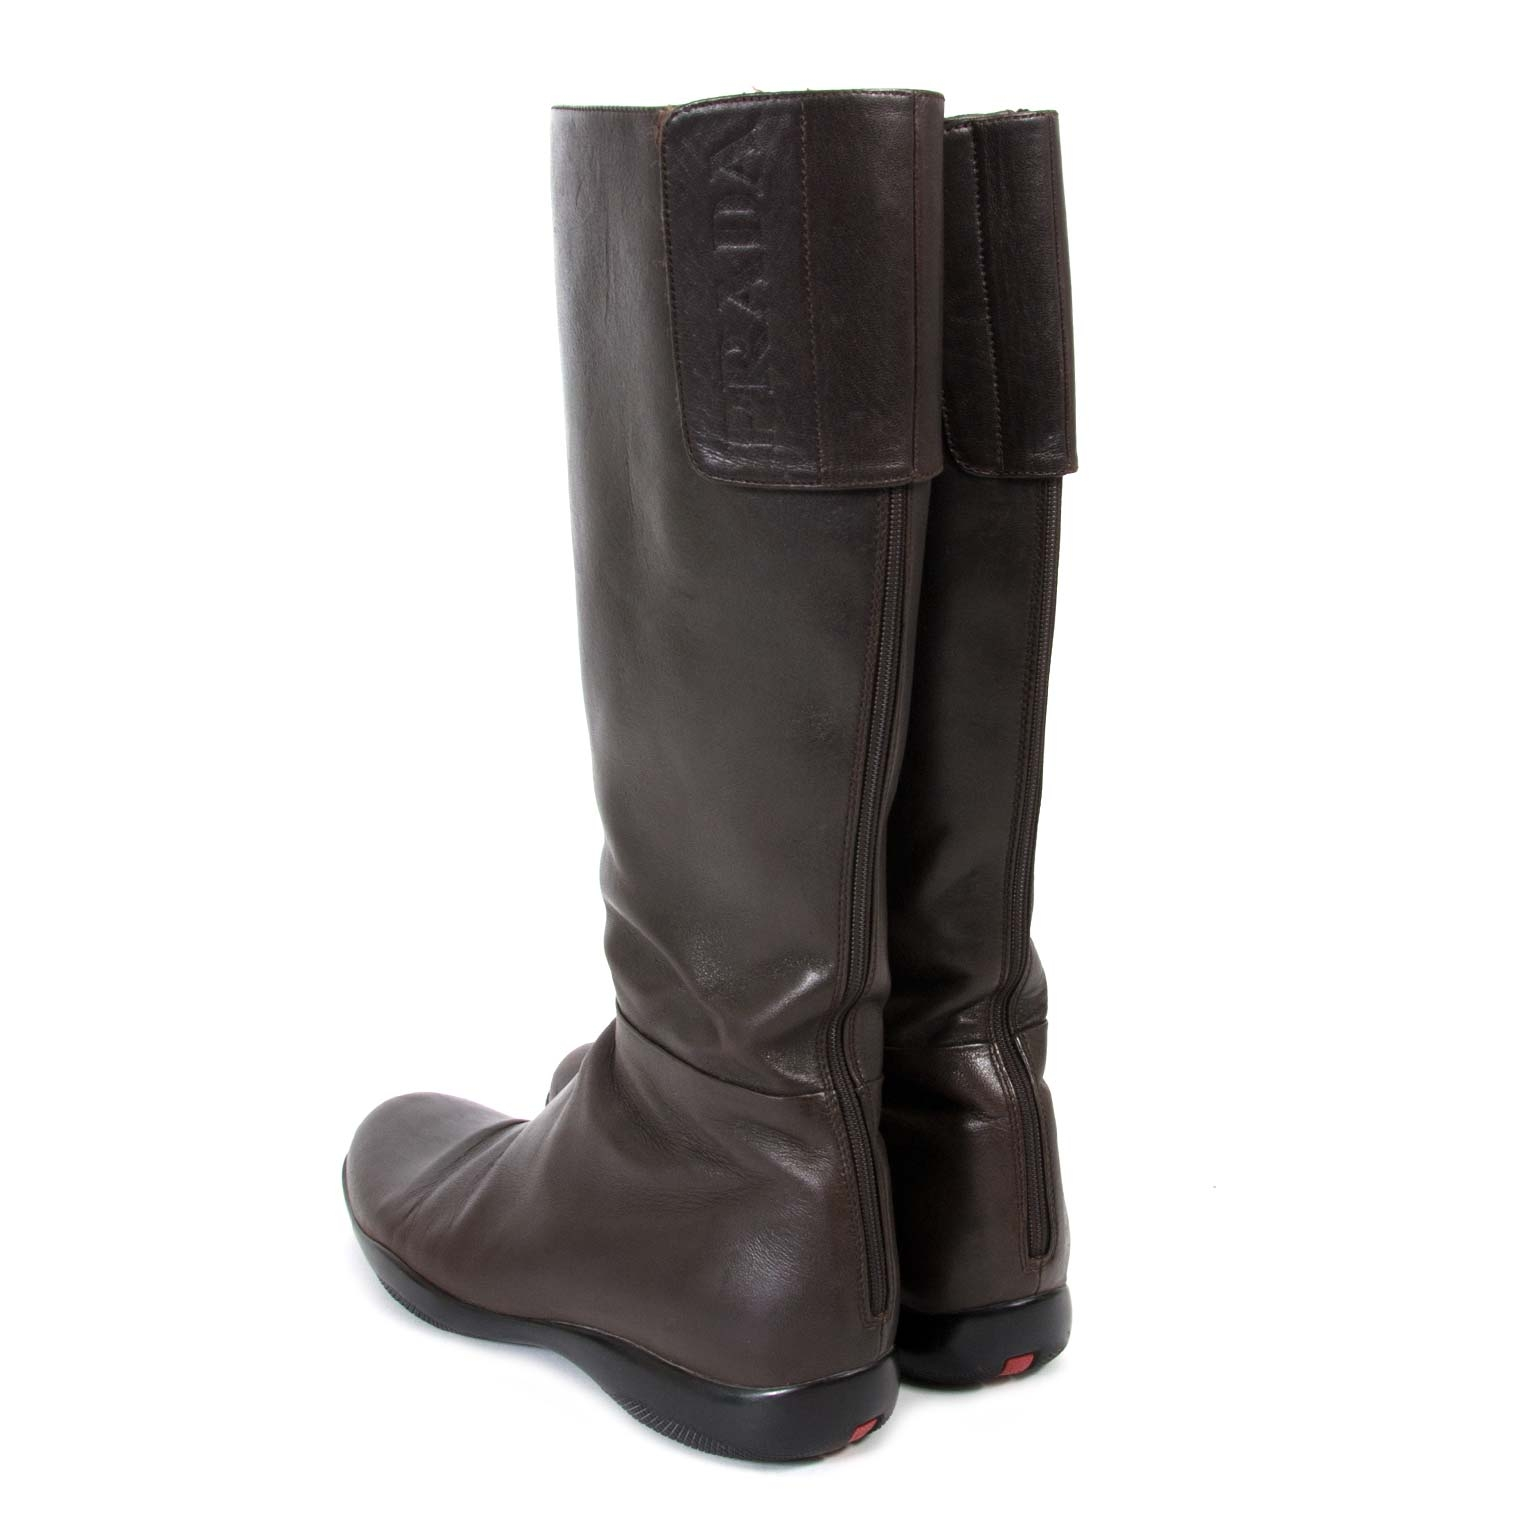 buy second hand authentic Prada Dark Brown Leather Boots - Size 39.5 at labellov vintage online store antwerp for the best price